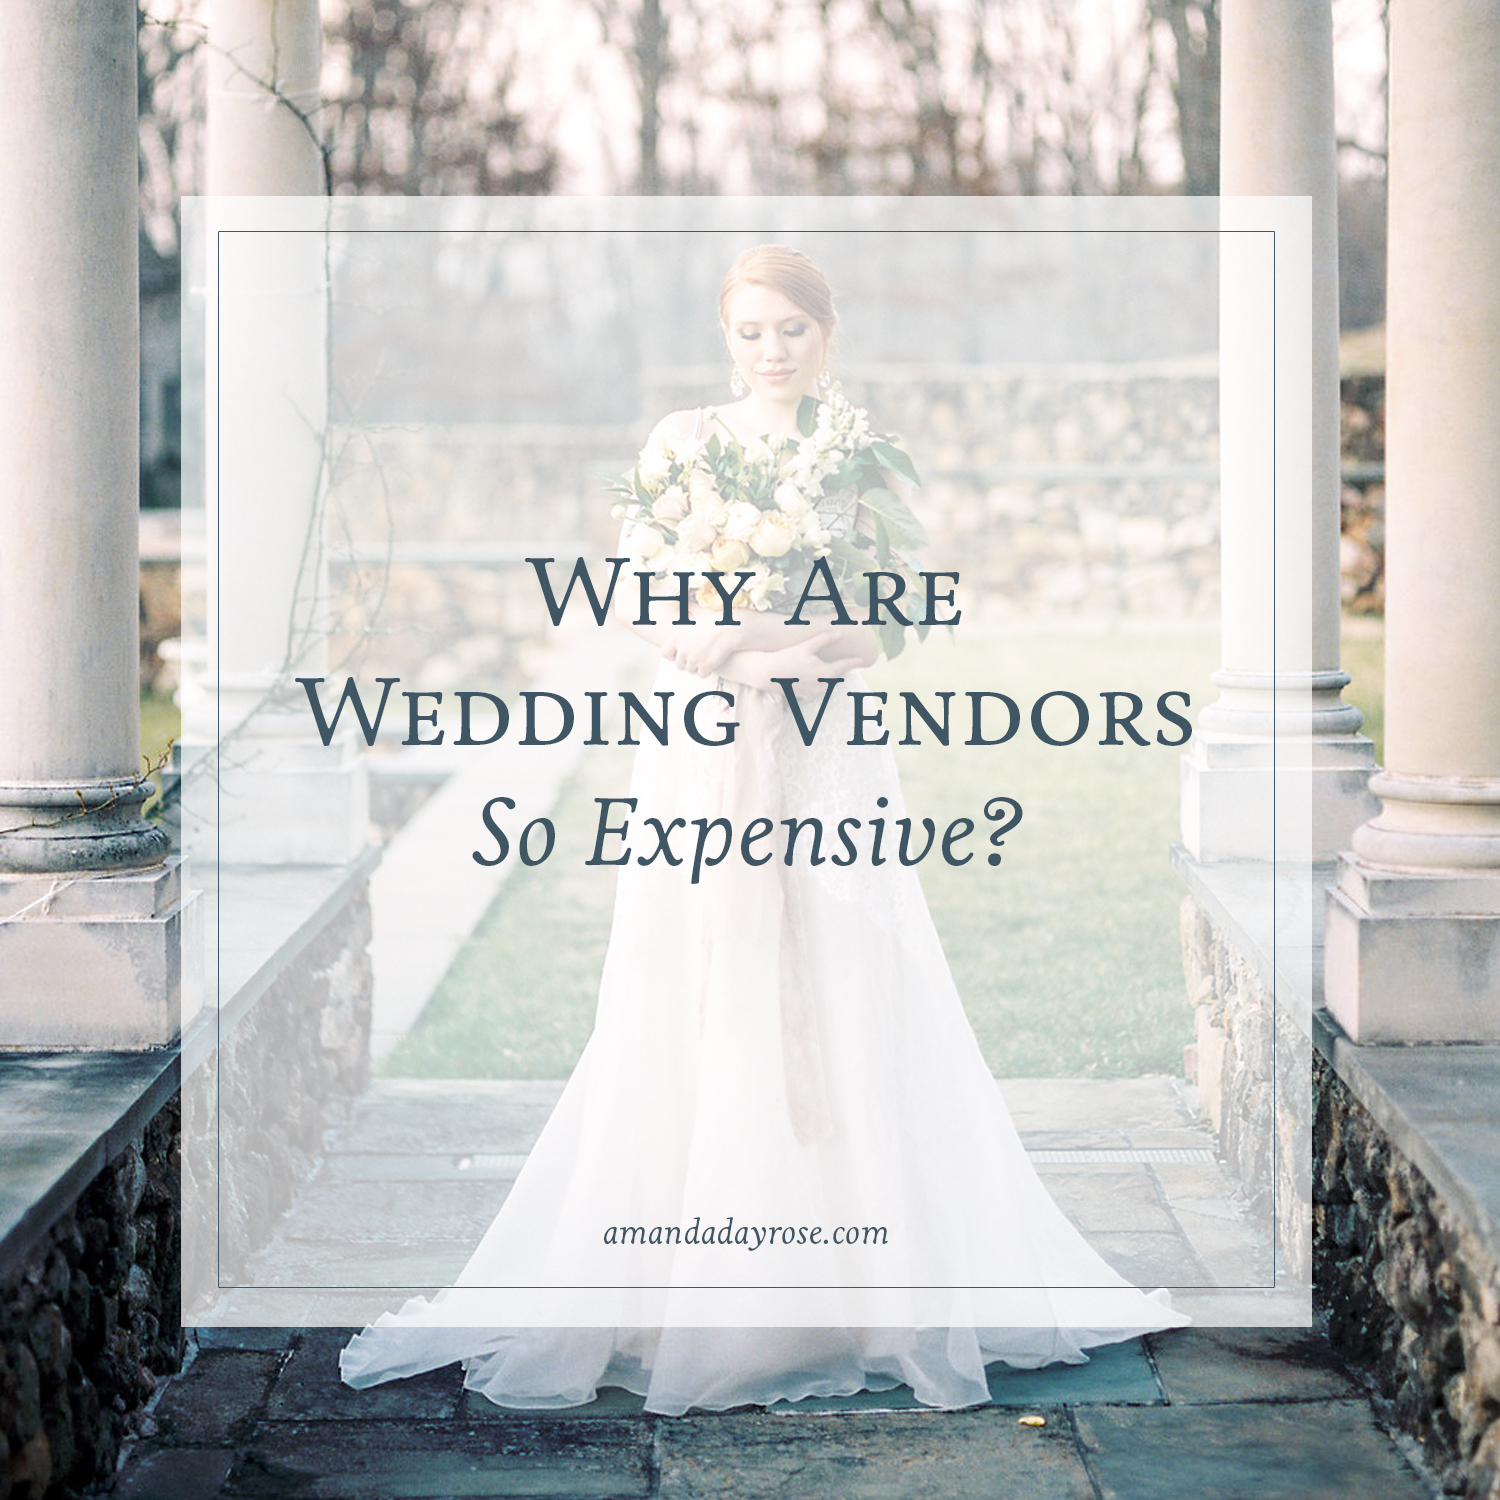 Why Are Wedding Vendors So Expensive?